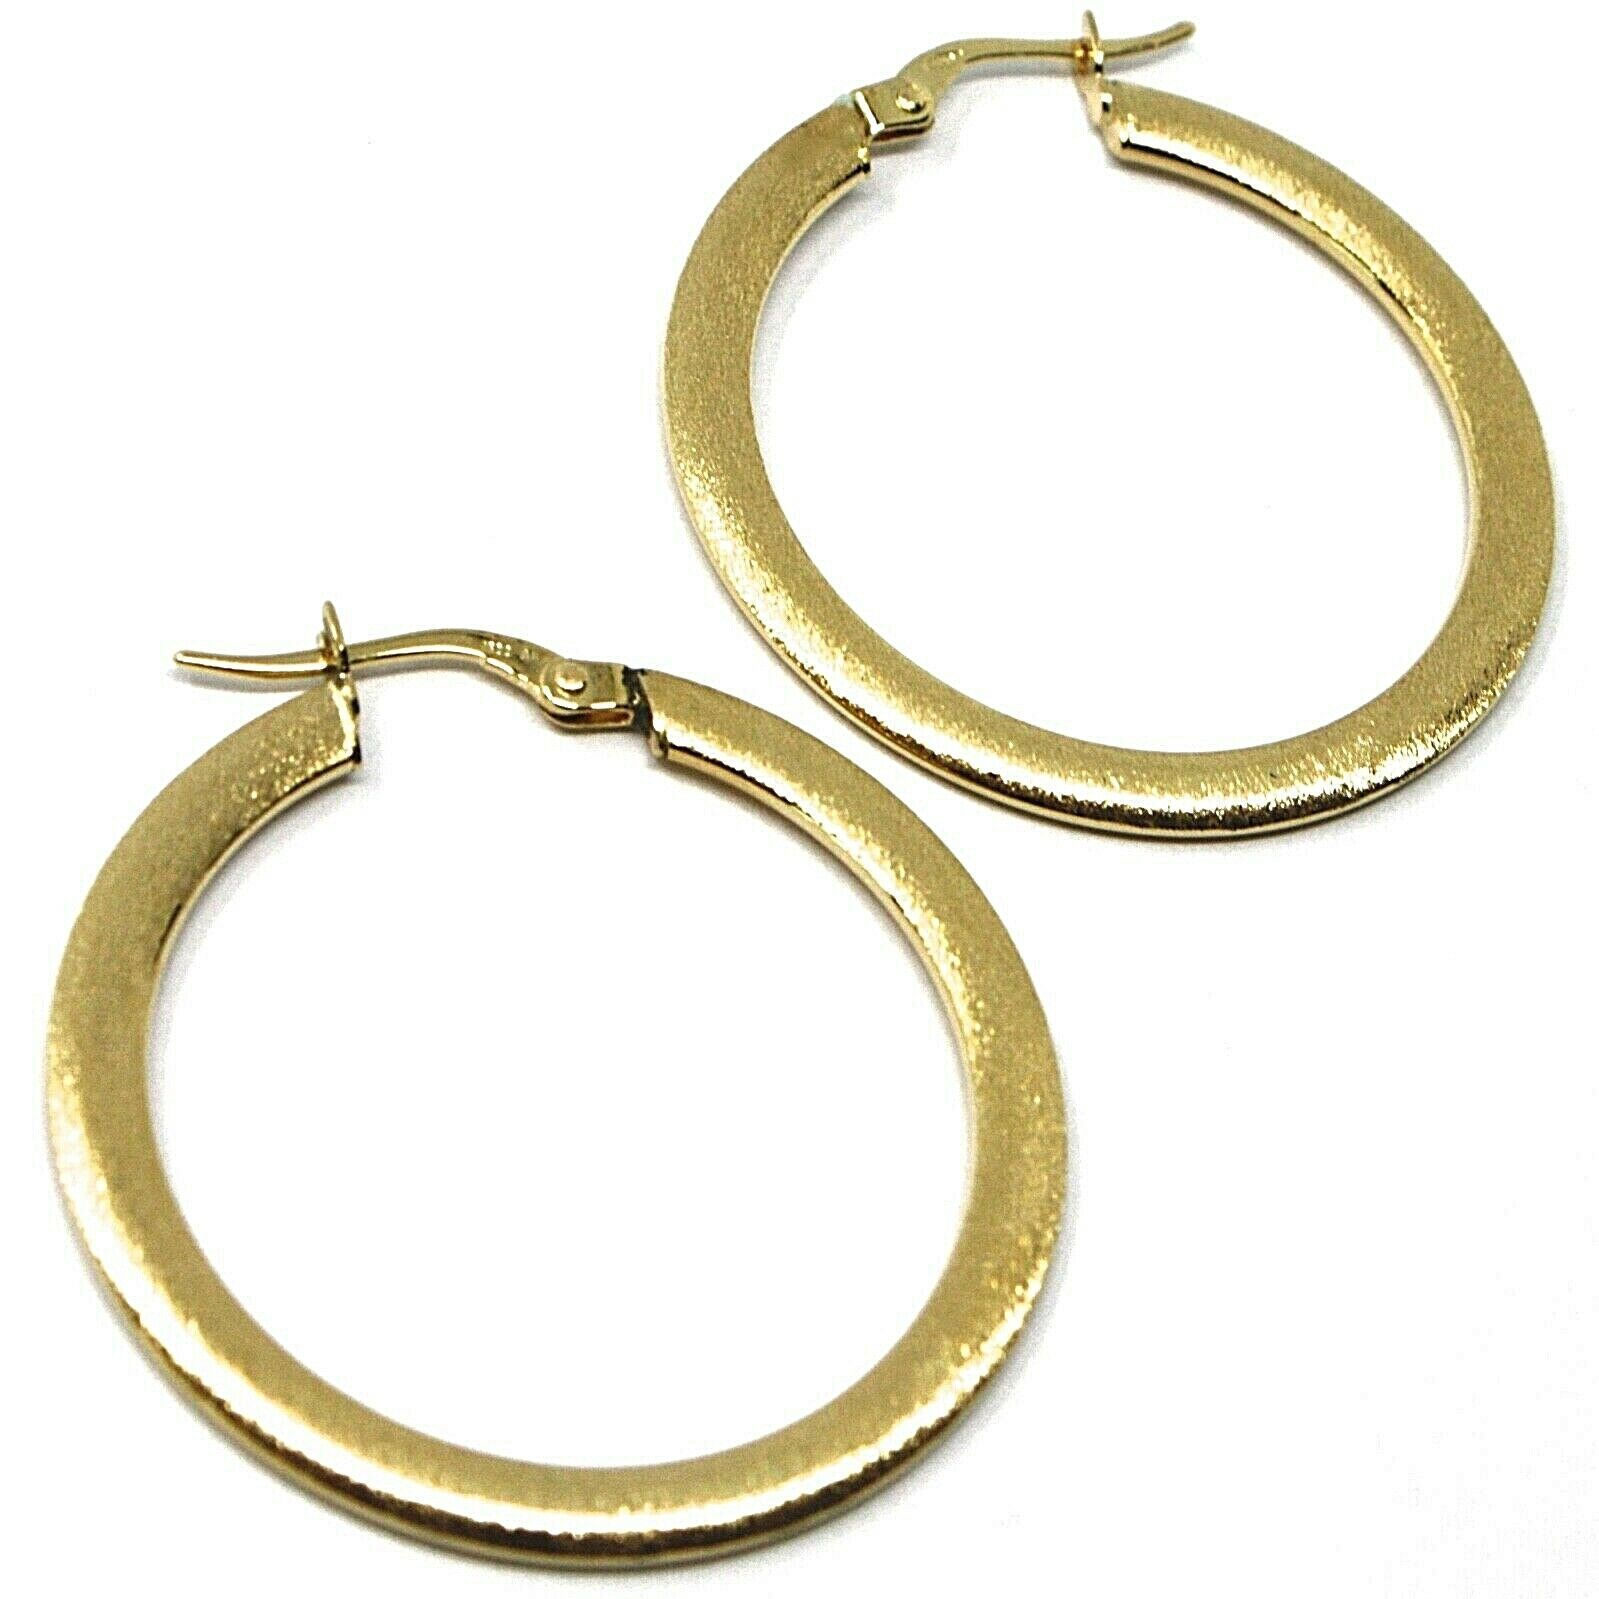 18K YELLOW GOLD CIRCLE HOOPS 3x1mm, EARRINGS 30mm, DOUBLE FACE SMOOTH & SATIN